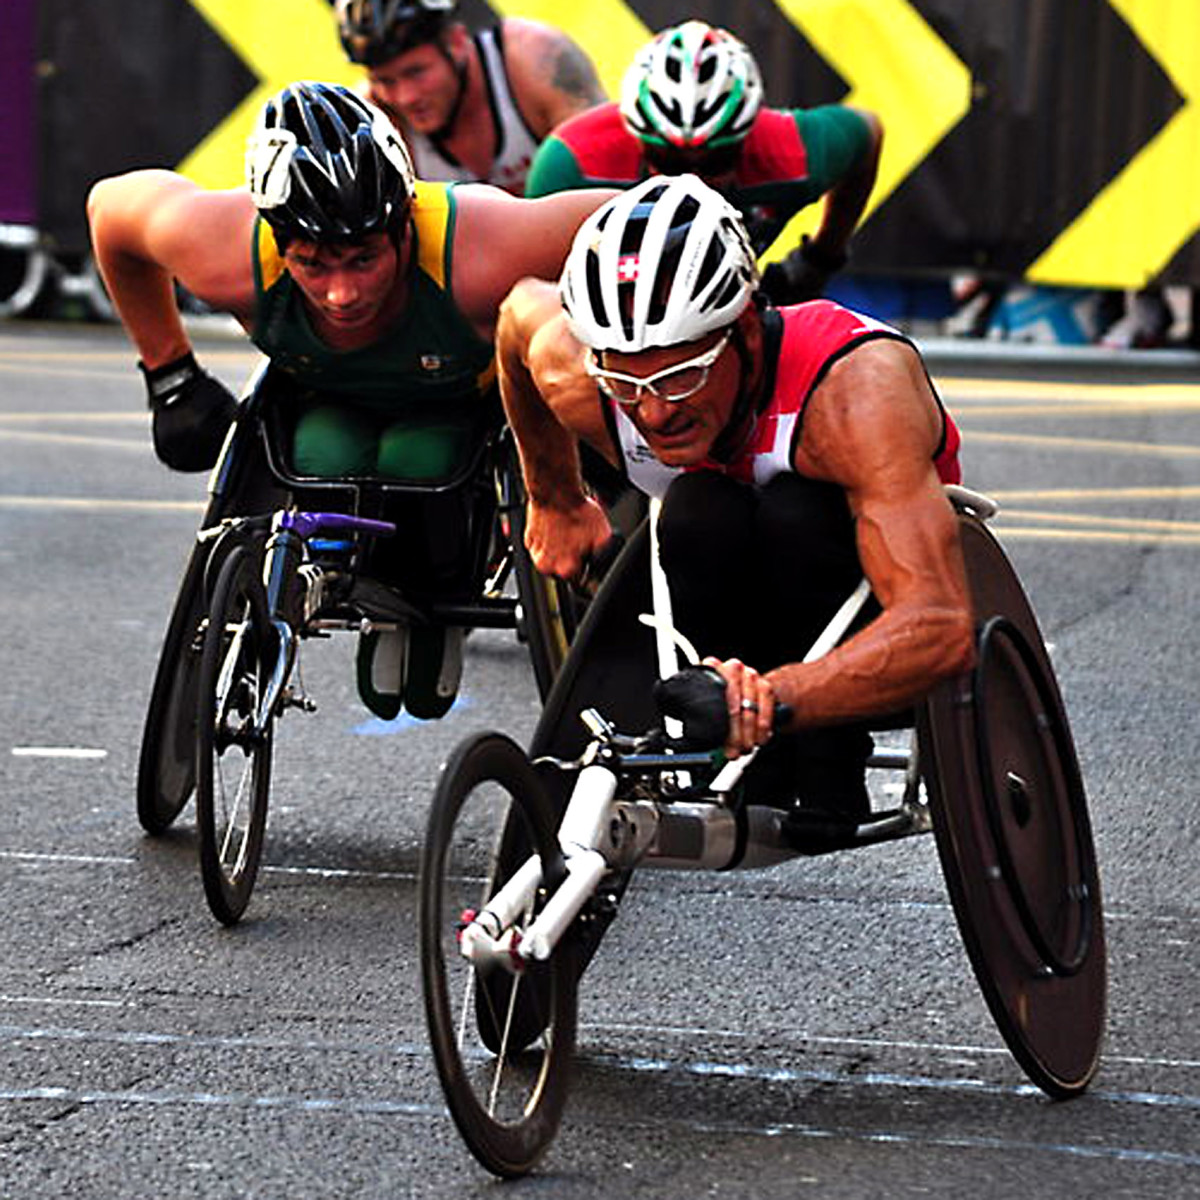 Participants in the paralympic marathon